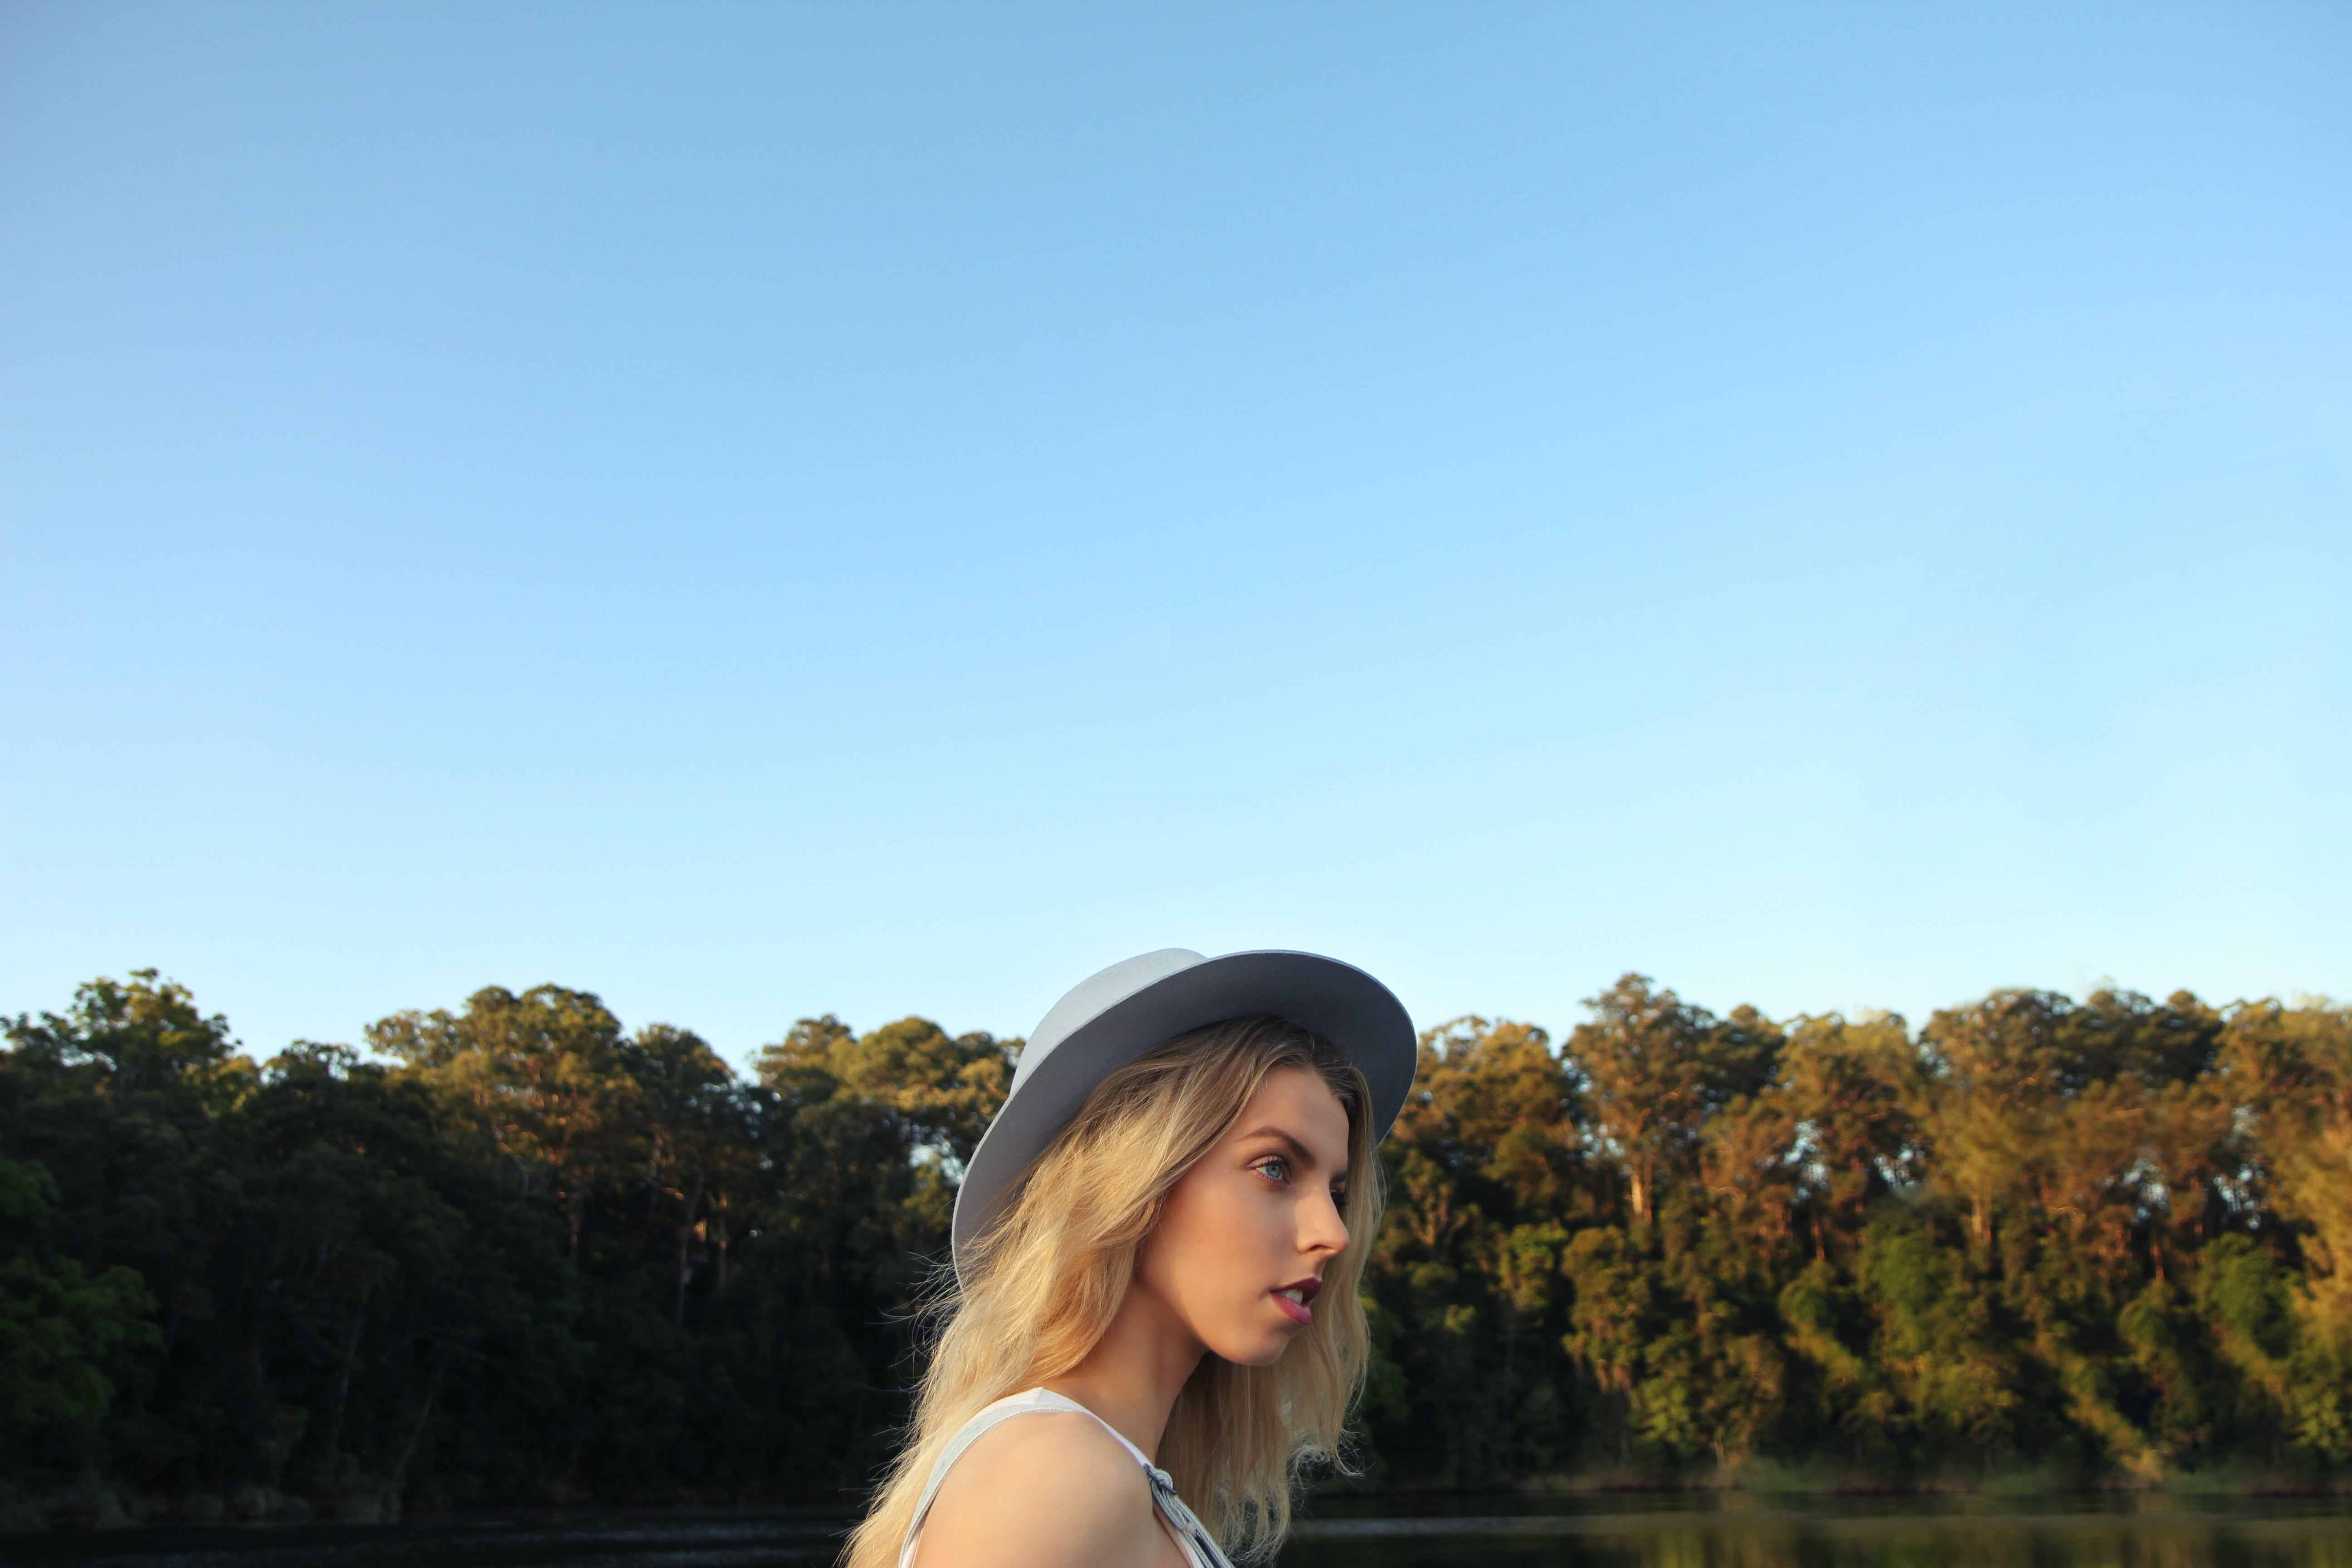 A young blonde woman in a hat near a forest under blue sky in Coomera